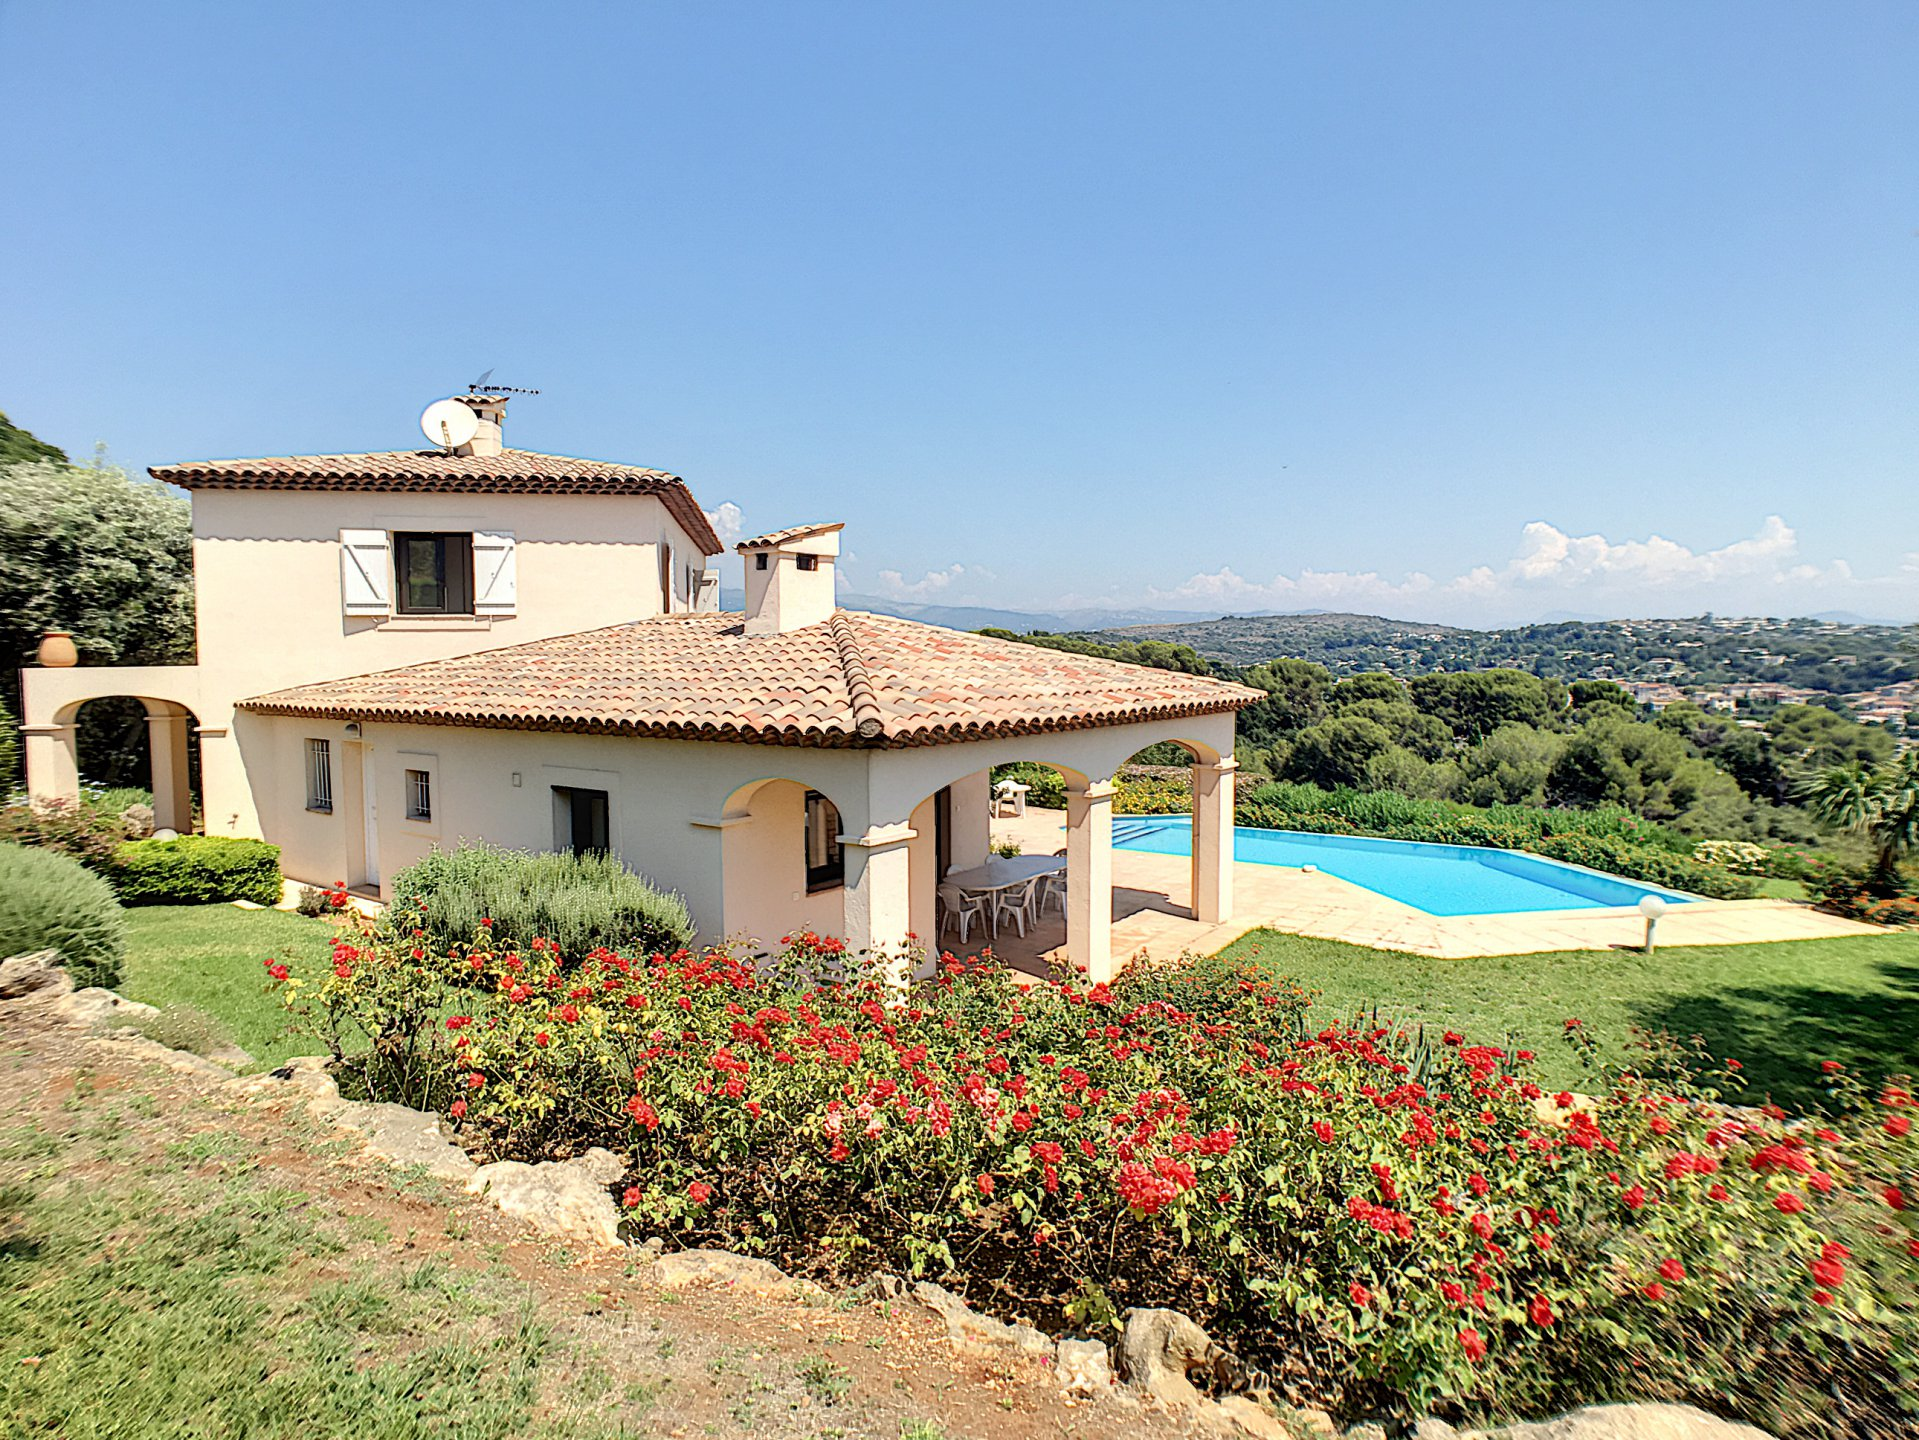 Villa with panoramic view on the village and the sea